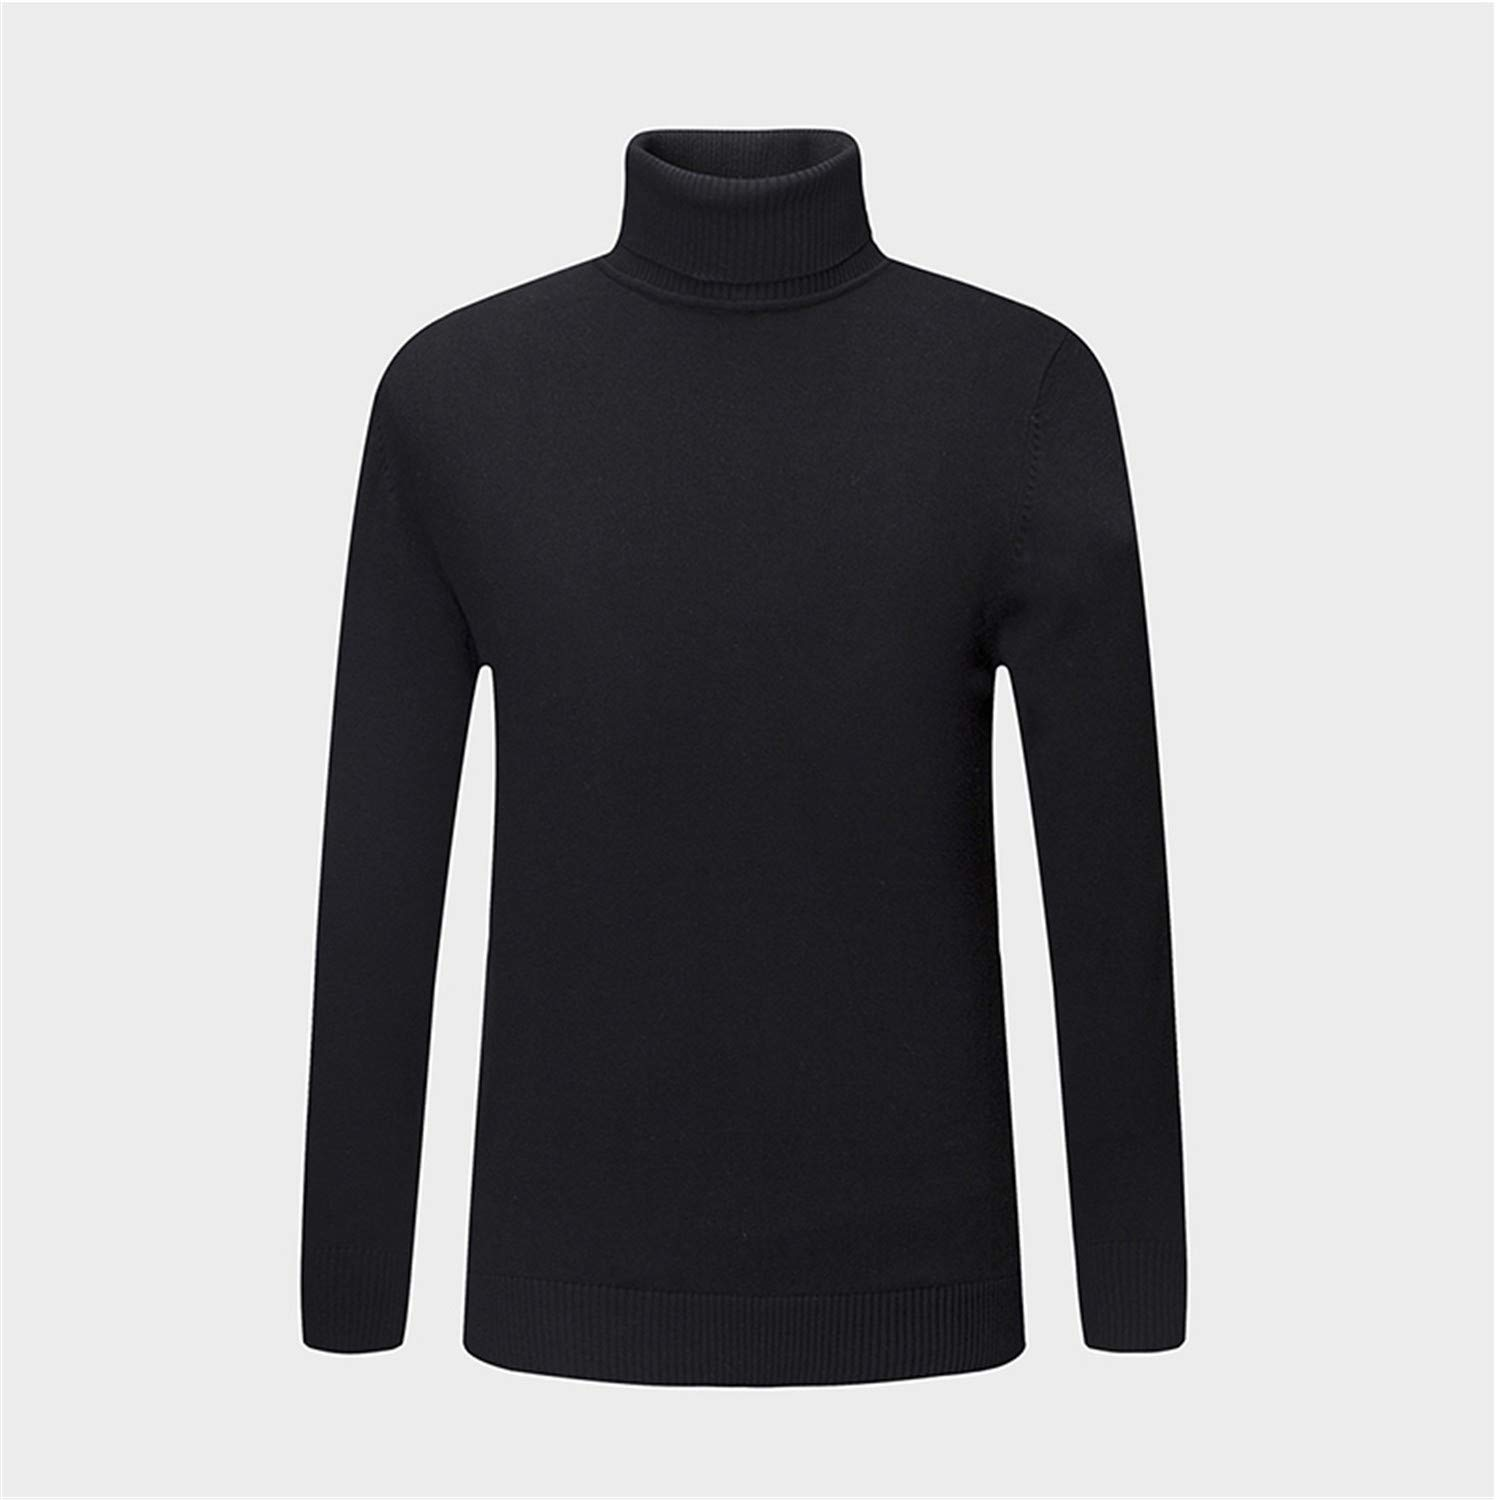 Winter Clothing Mens Sweaters Warm Slim Fit Turtleneck Men Pullover 100/% Cotton Knitted Sweater